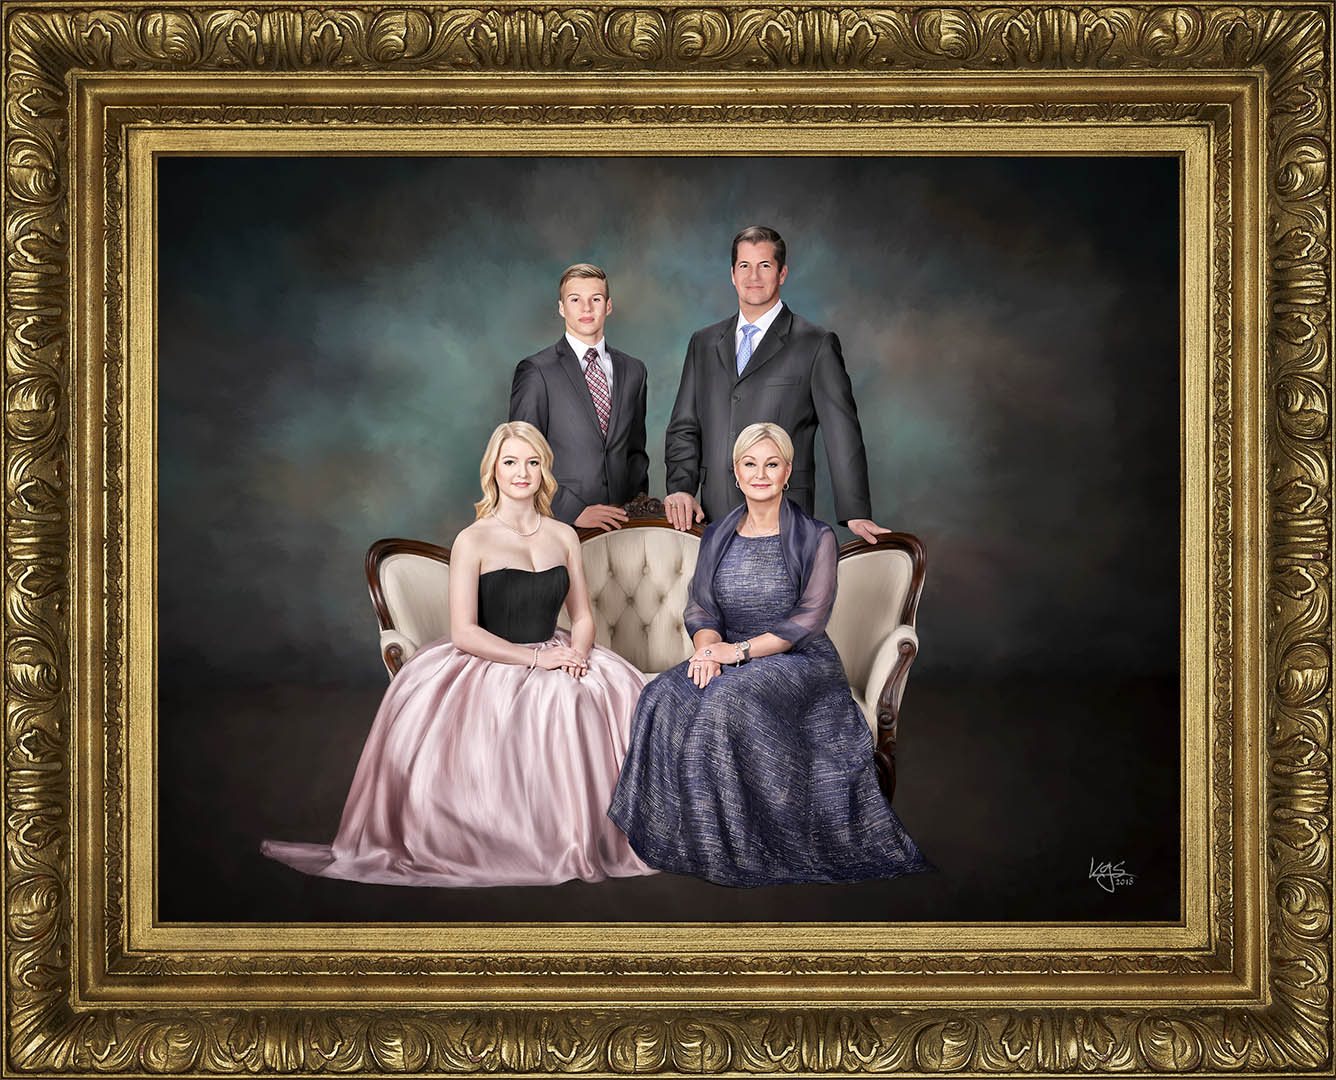 Family_Heirloom_Portrait-KGS_Masterpiece